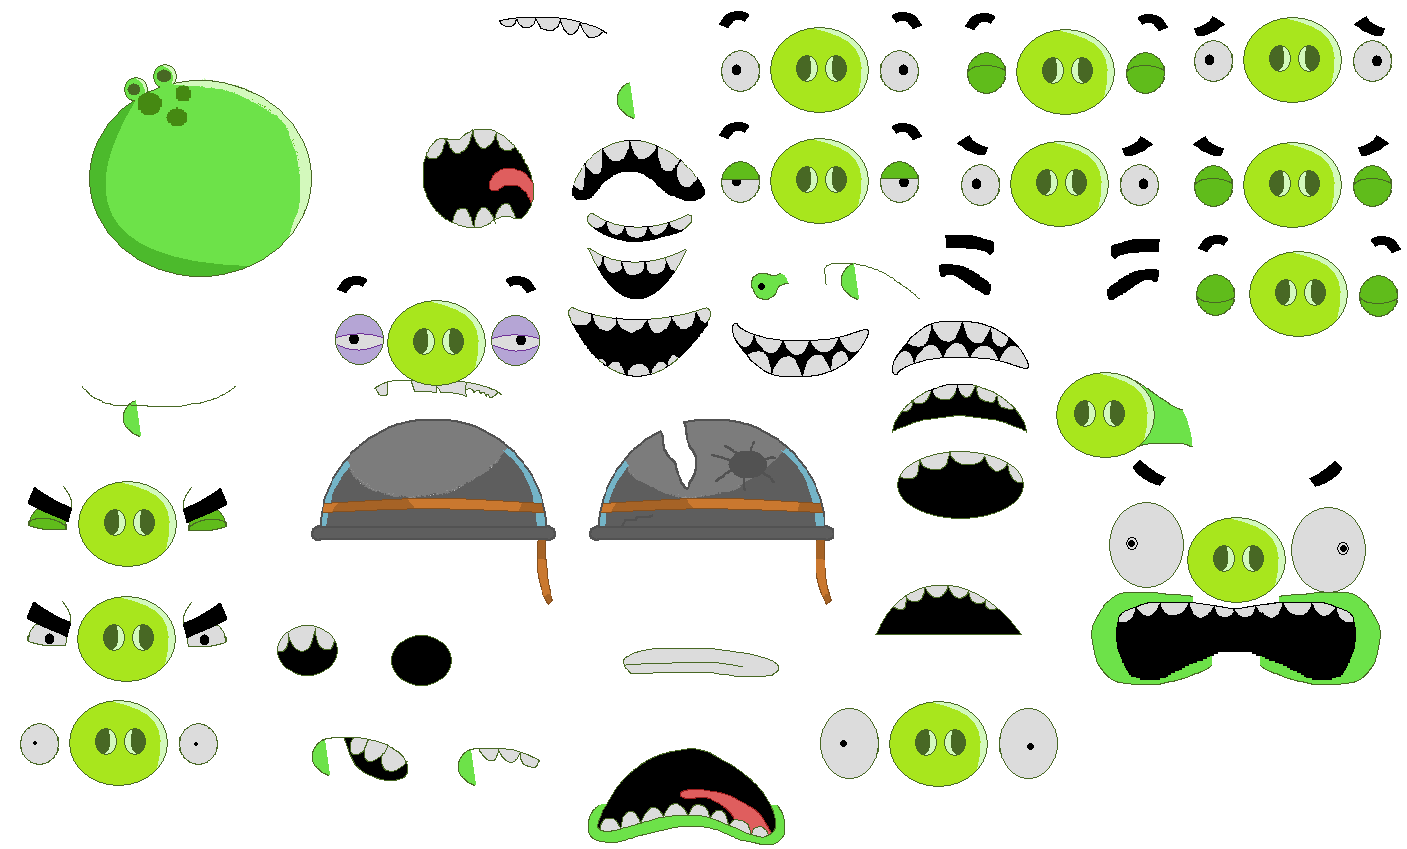 Jareds Angry Birds Sheets By Jared33 On DeviantArt Corporal Pig Sheet D7elqzx Jared S 447831355 King And Minion